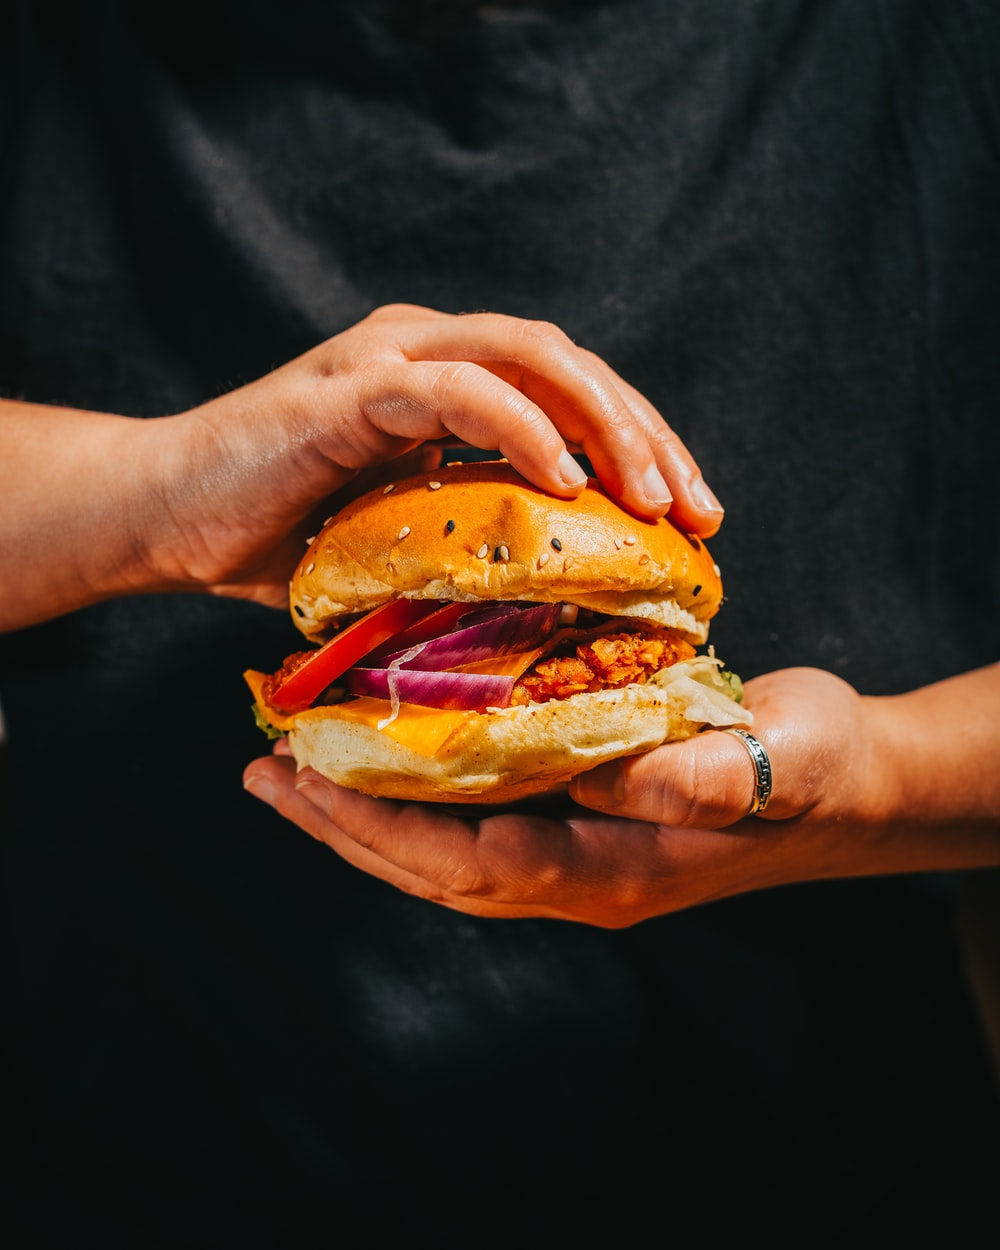 person holding burger with tomato and lettuce